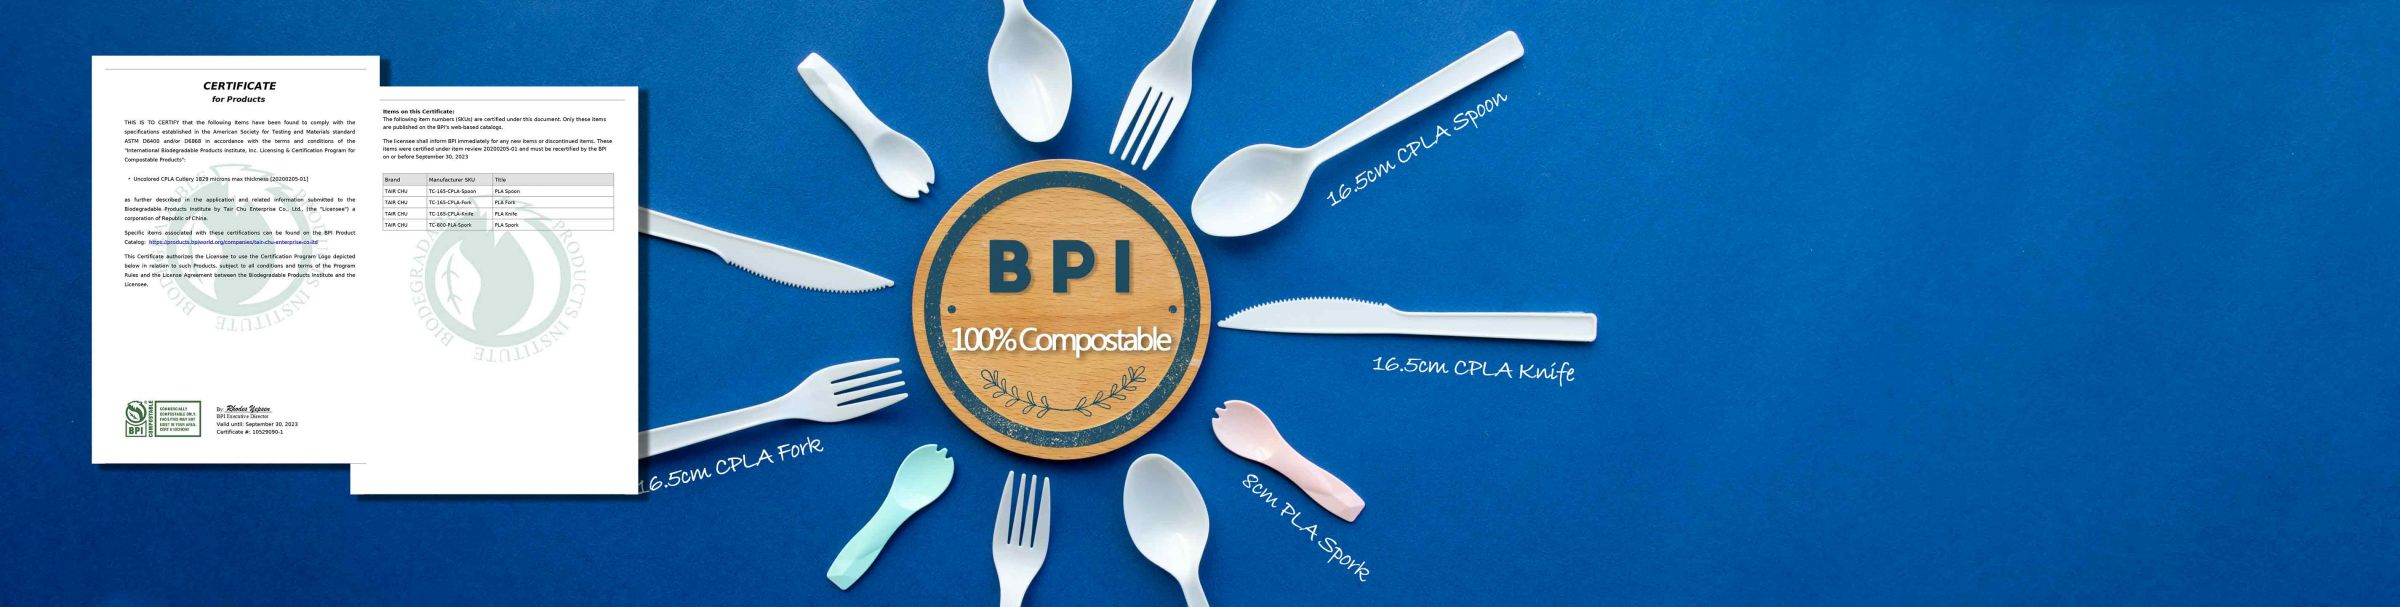 Corn Starch Cutlery Get BPI Certification 100% Compostable